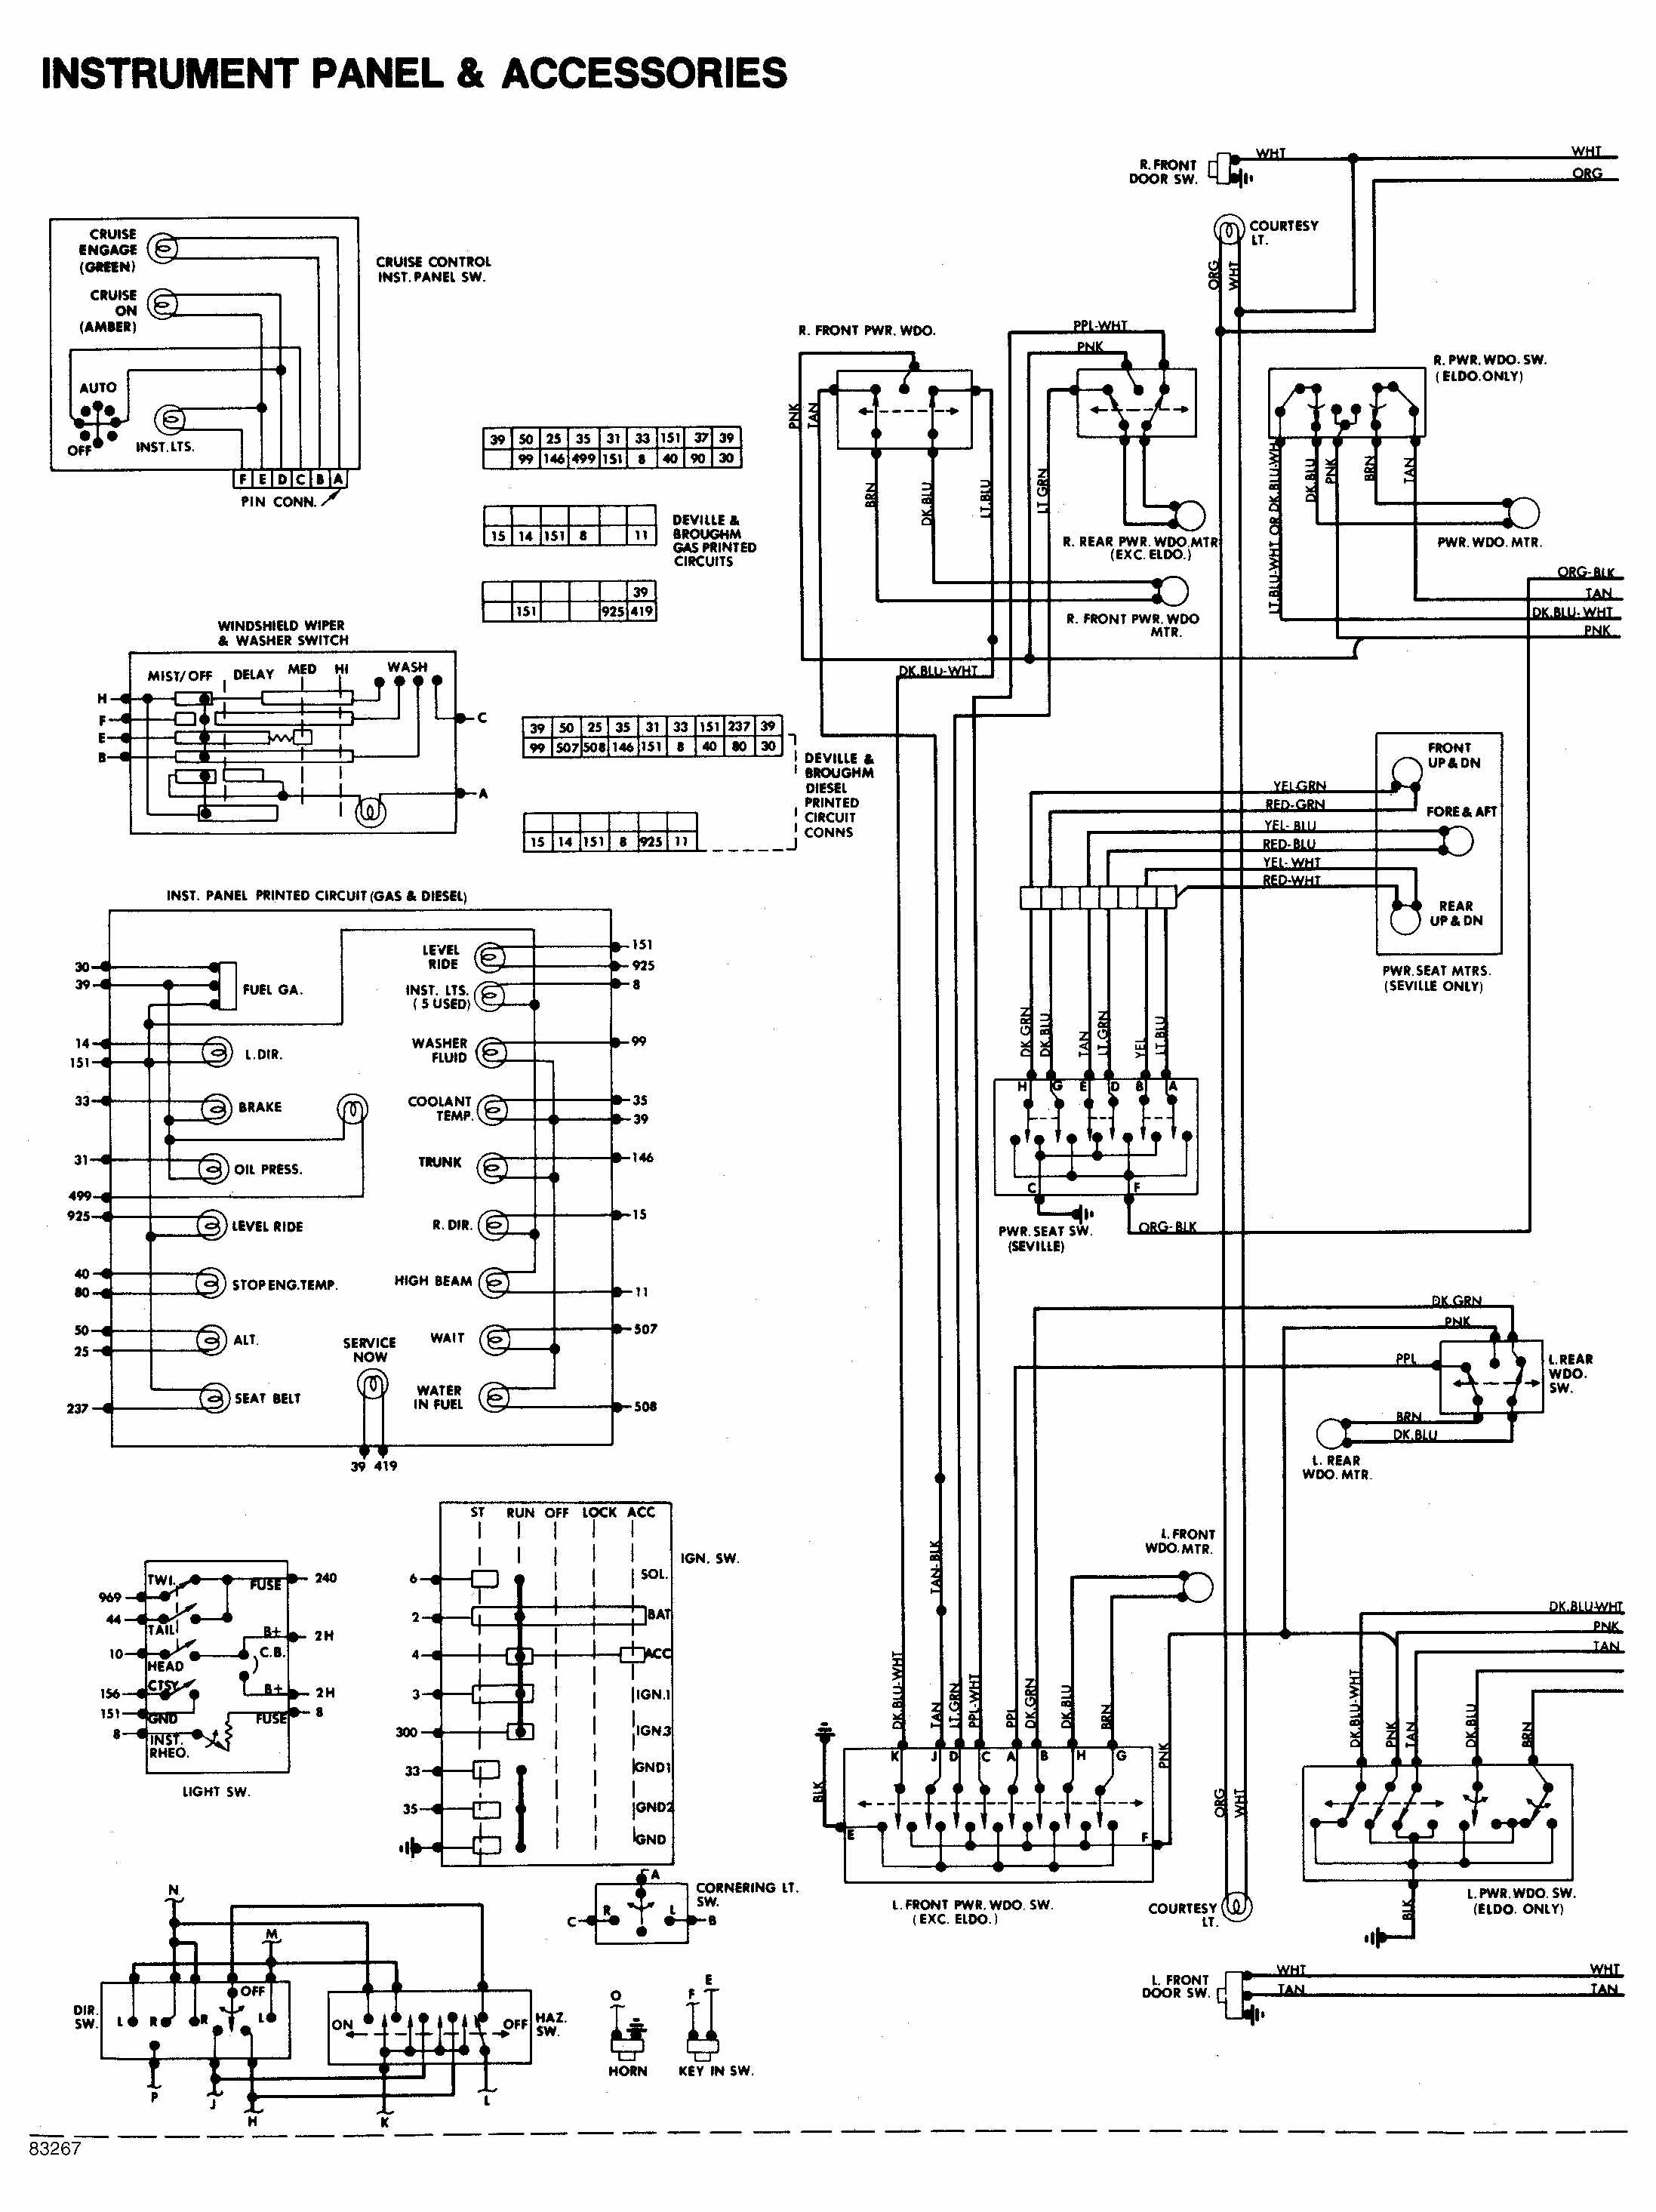 instrument panel and accessories wiring diagram of 1984 cadillac deville 84 corvette wiring diagram 84 gmc column switches \u2022 wiring  at mifinder.co